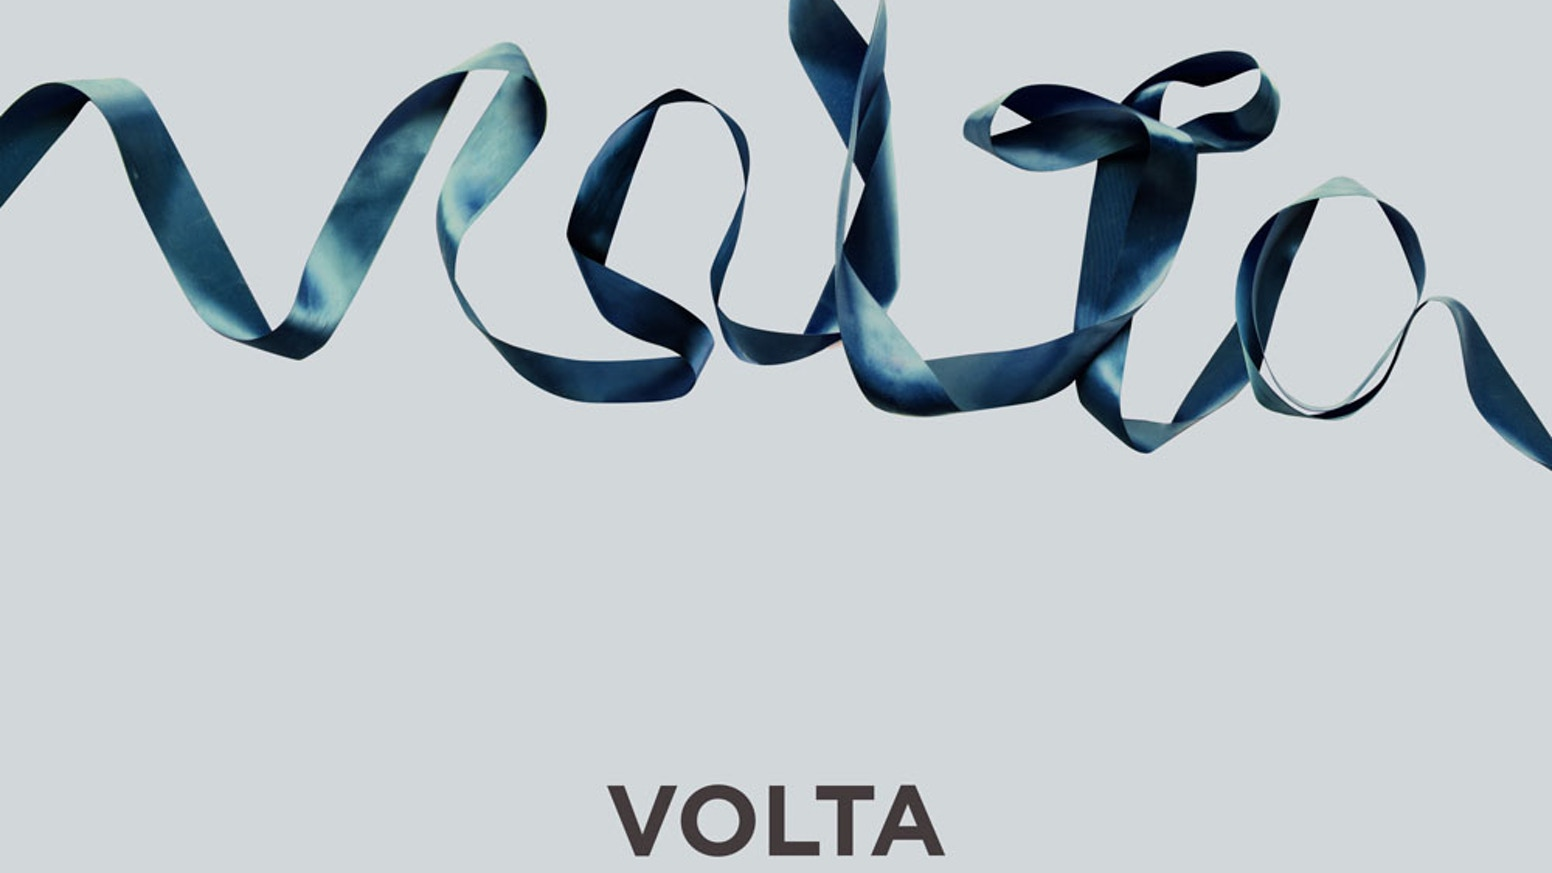 VOLTA, a short film by Stella Kyriakopoulos » VOLTA write up